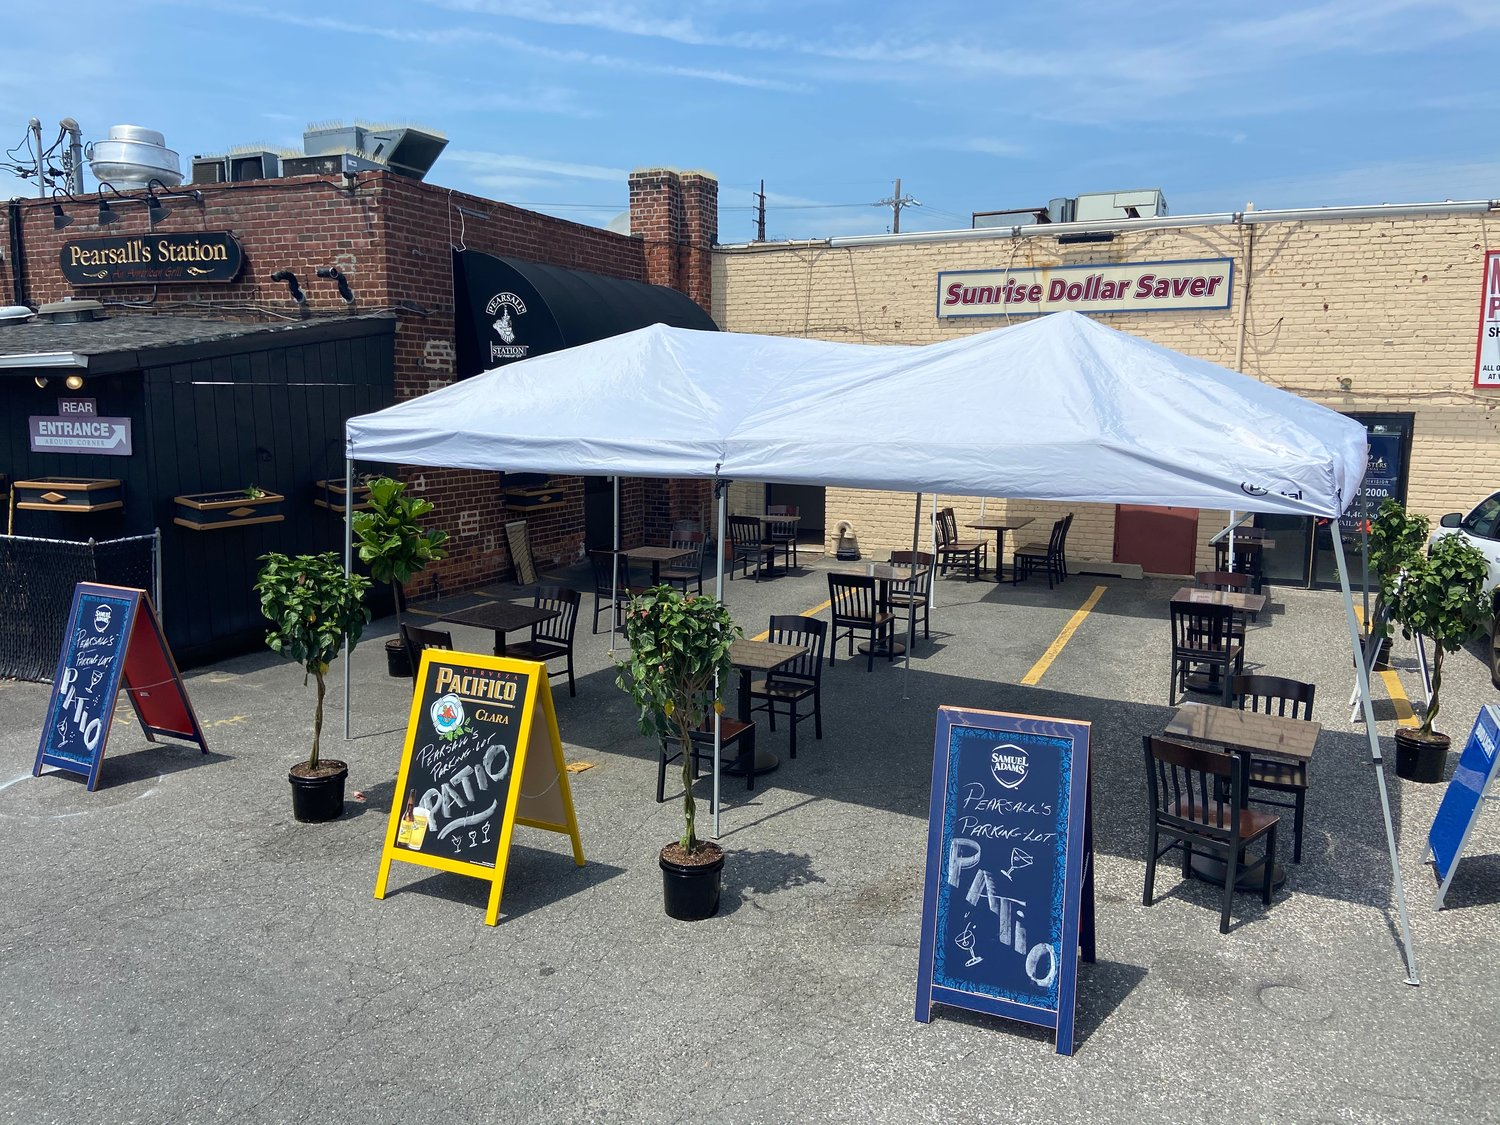 On June 12, Pearsall's Station in Lynbrook opened for outdoor dining.